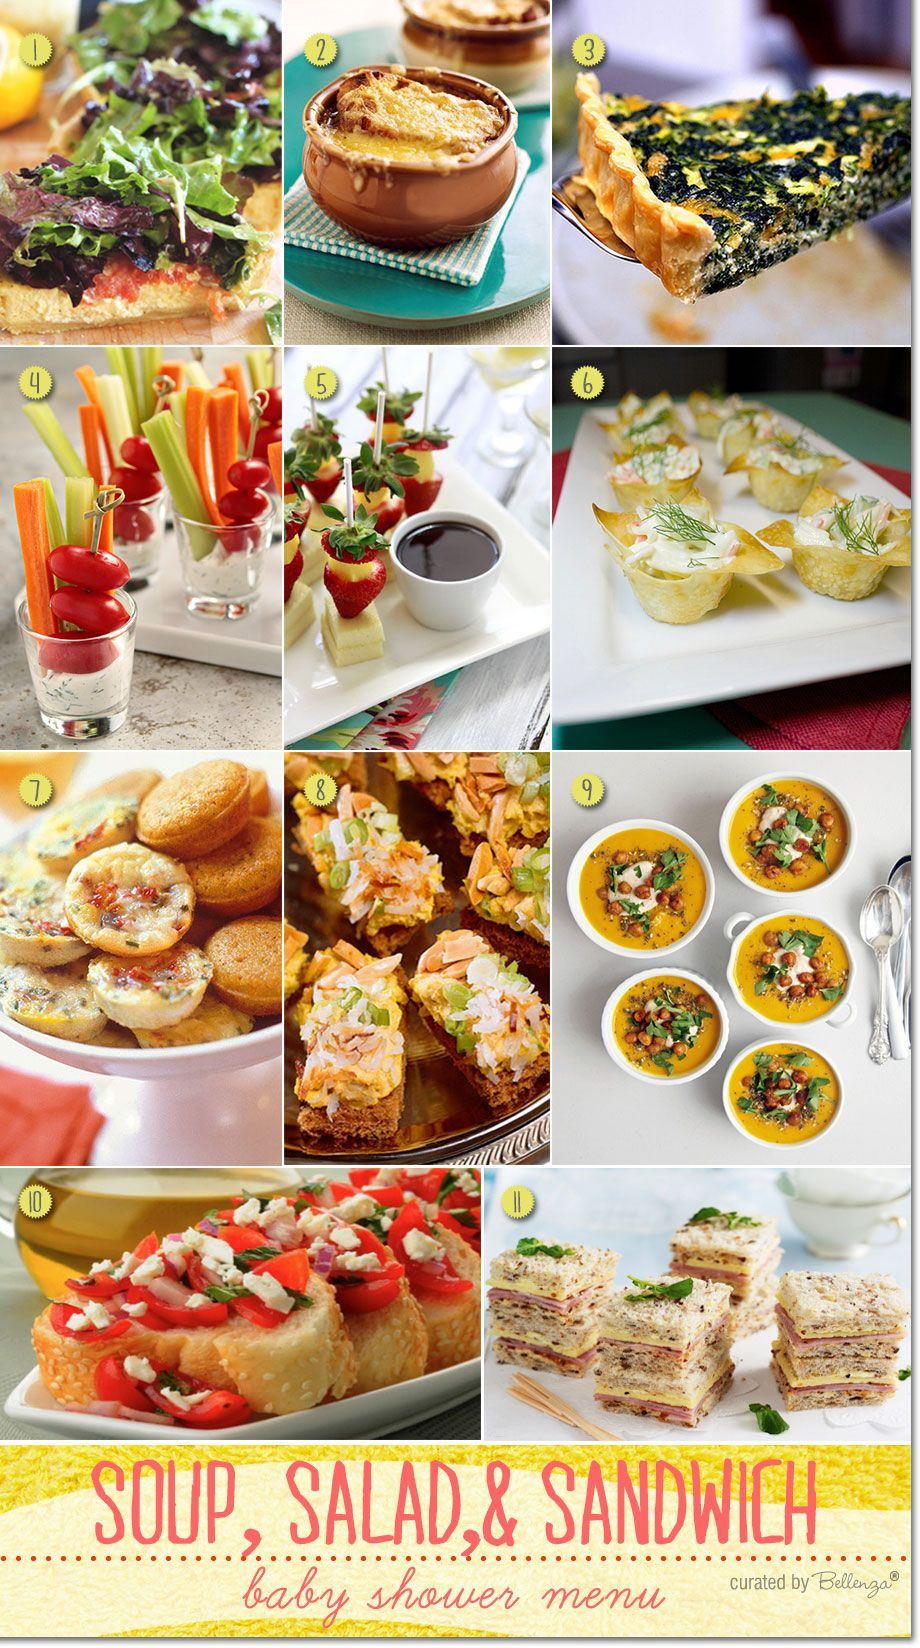 Baby Shower Food Ideas - 25 Snacks for a Baby Shower